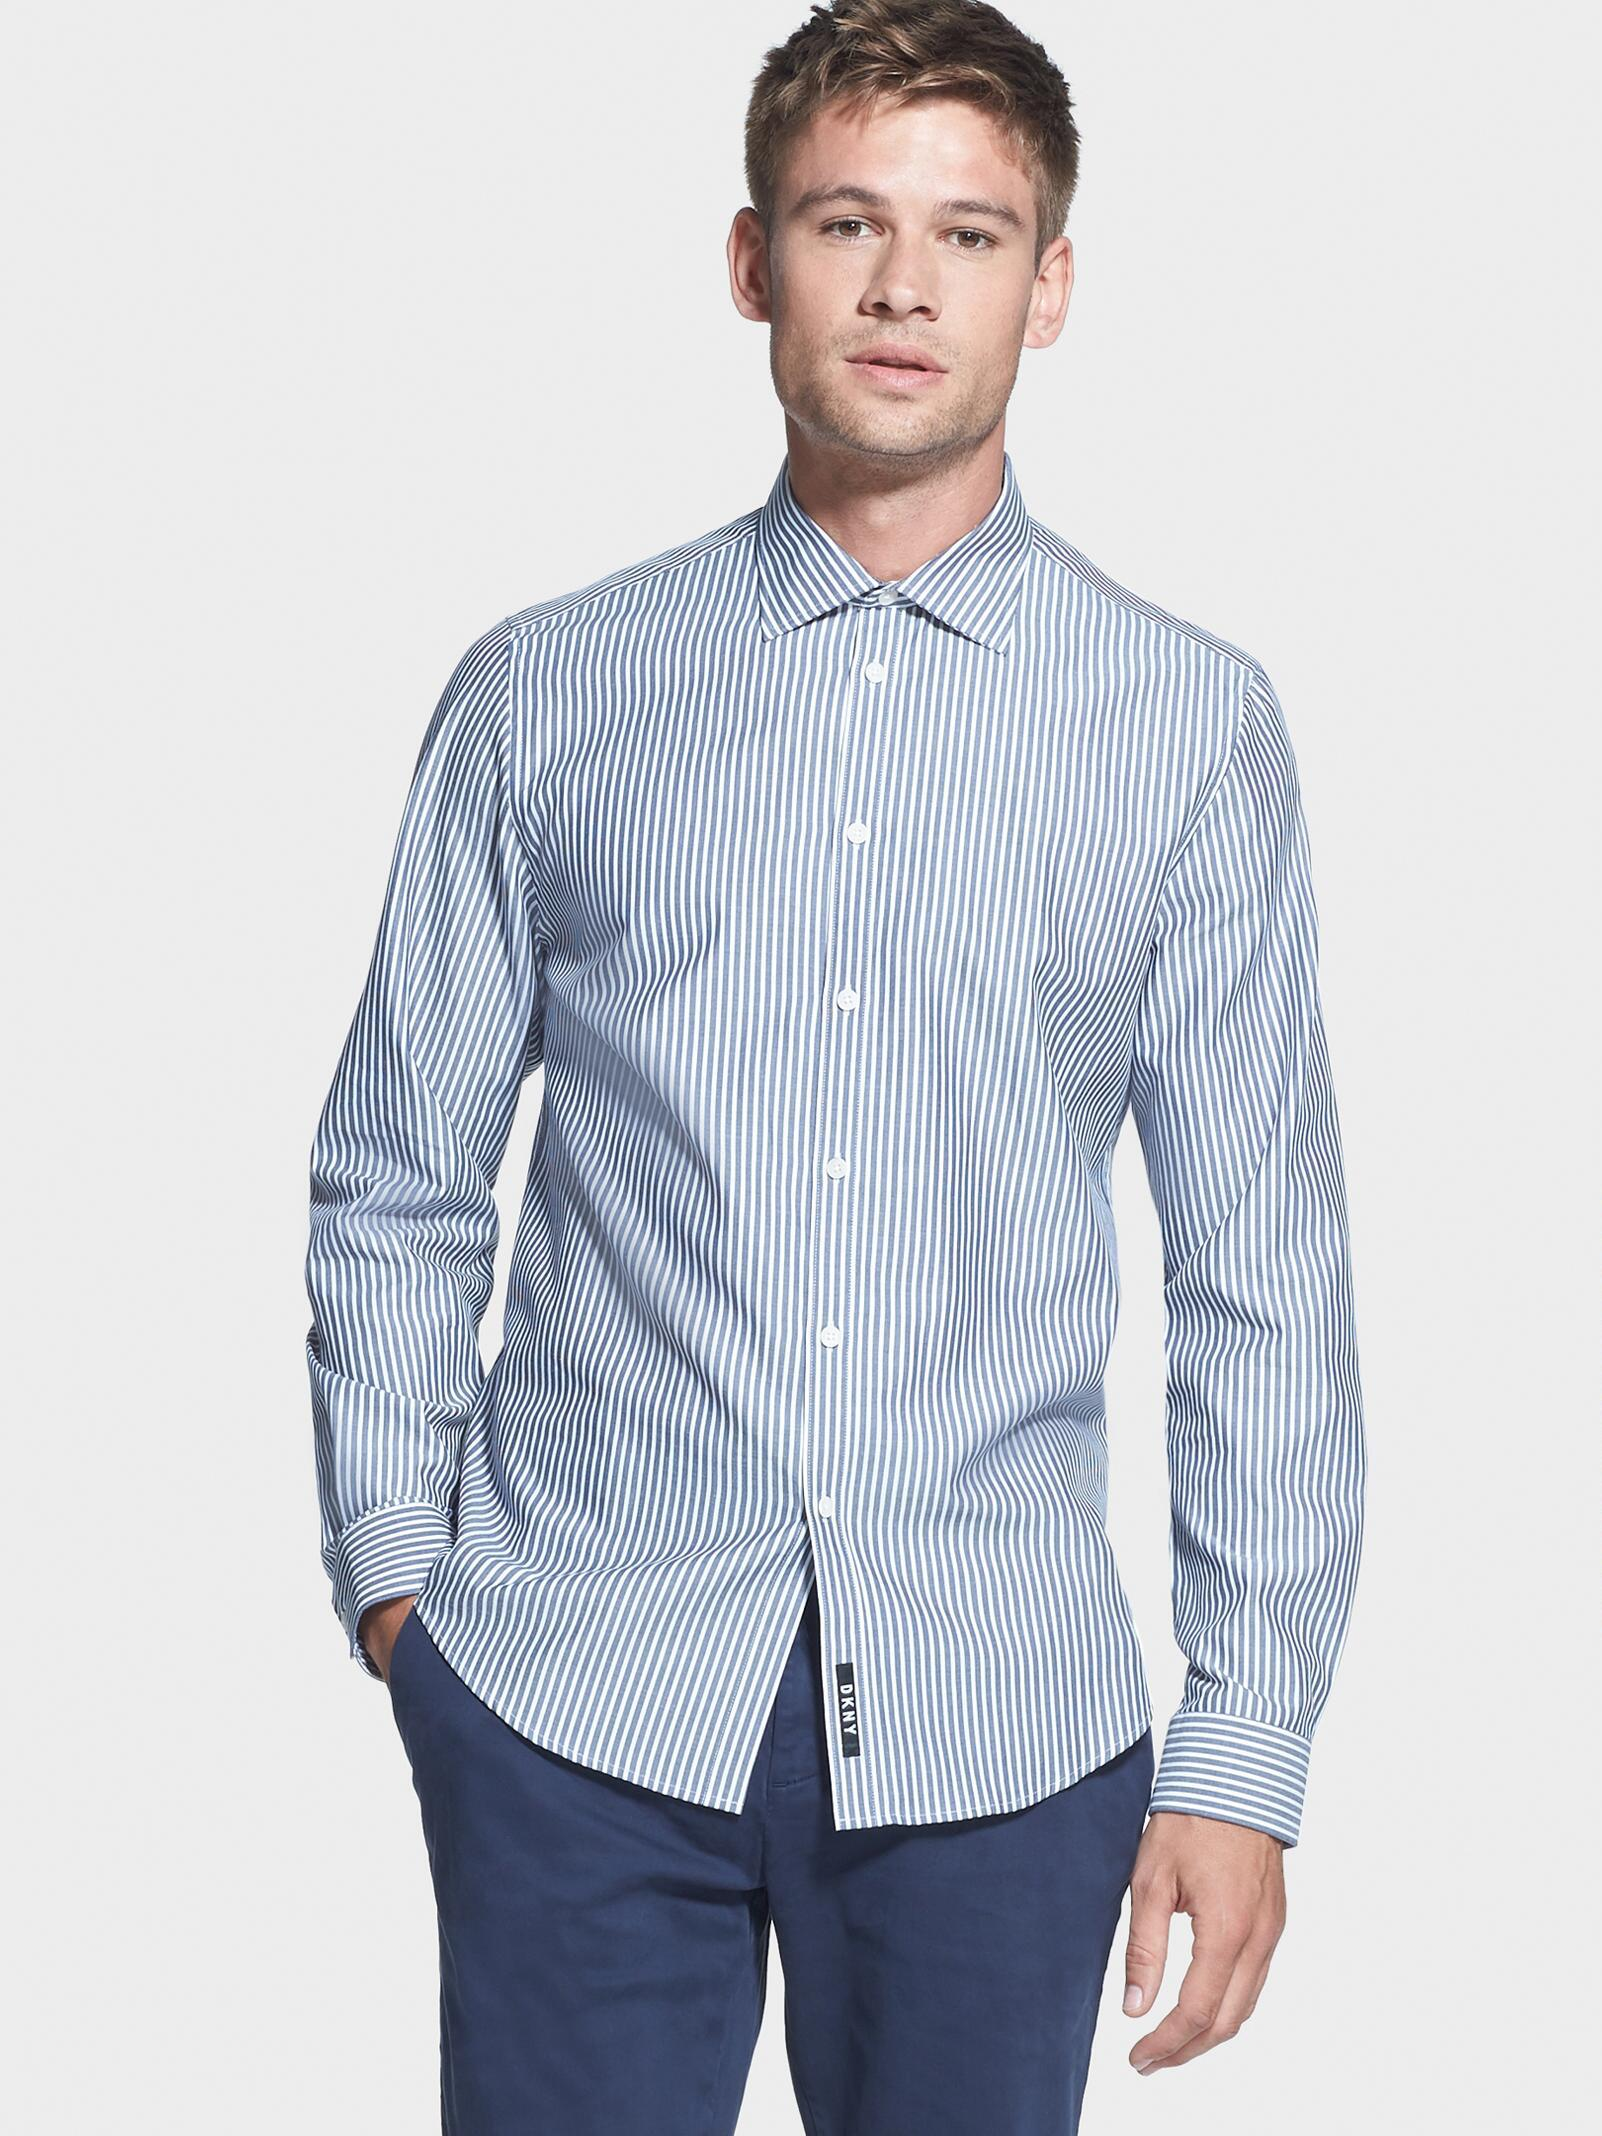 e4849432c9d Lyst - DKNY Woven Stripe Button-up Shirt in Blue for Men